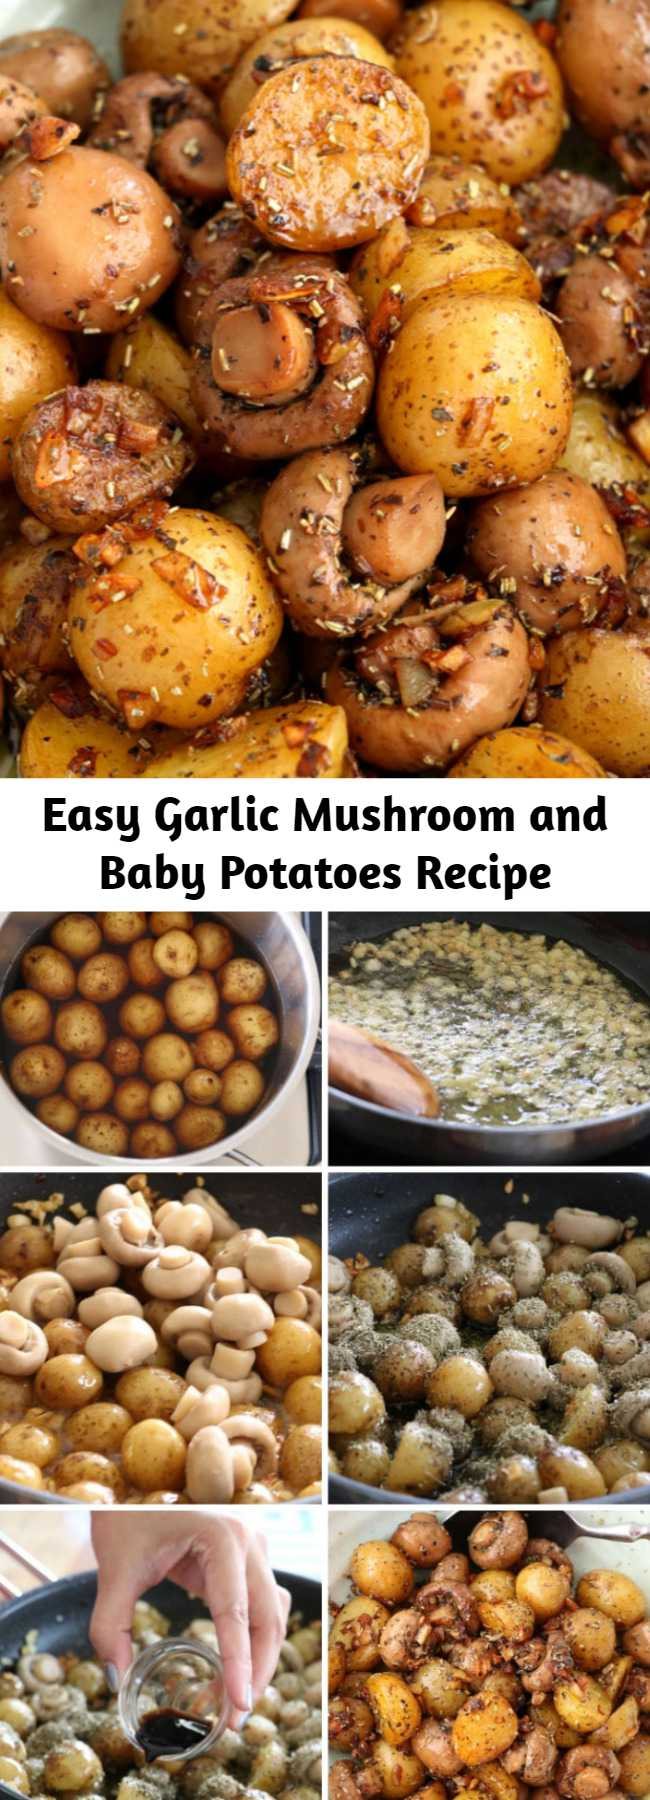 Easy Garlic Mushroom and Baby Potatoes Recipe - A buttery dish of pan-roasted Garlic Mushroom and Baby Potatoes with herbs. So simple and very easy to make with elegant results that make for a delicious side or appetizer.